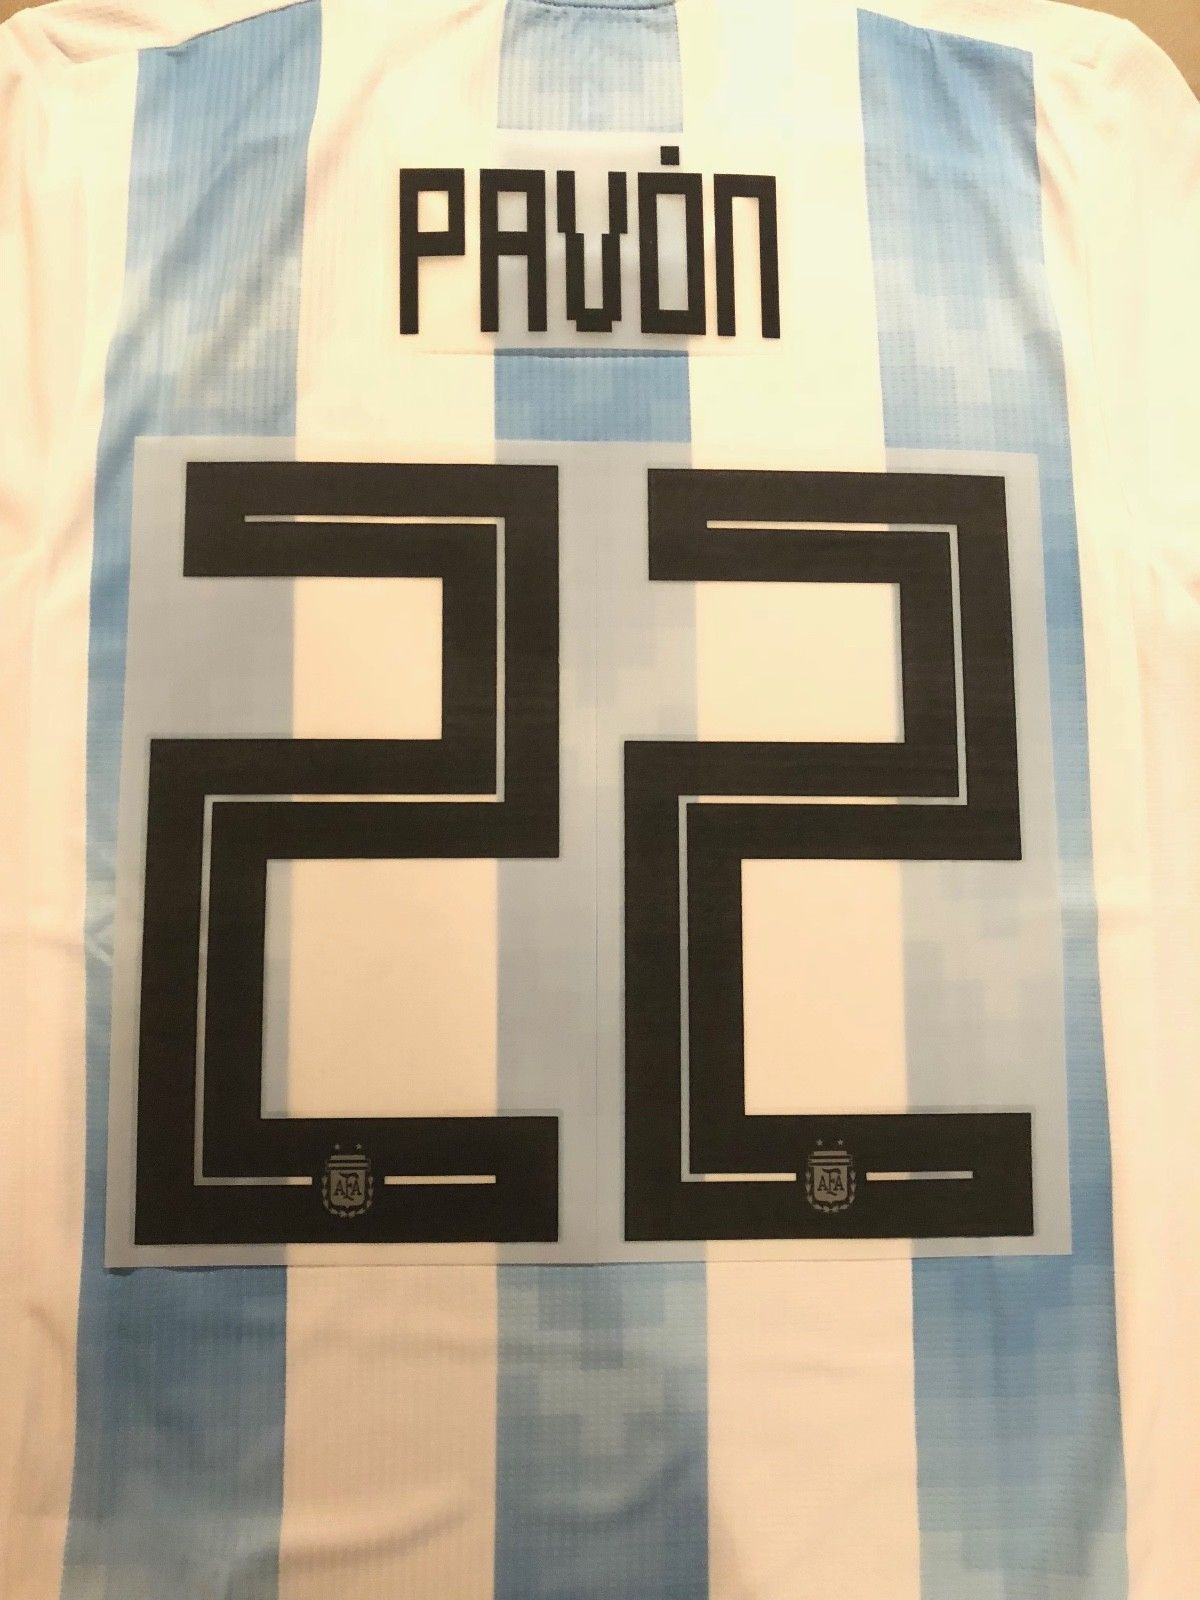 ba799f17f40 PAVON Argentina  22 Name Number Set Professional Size 2018 World Cup  Discount Price 40.00 Free